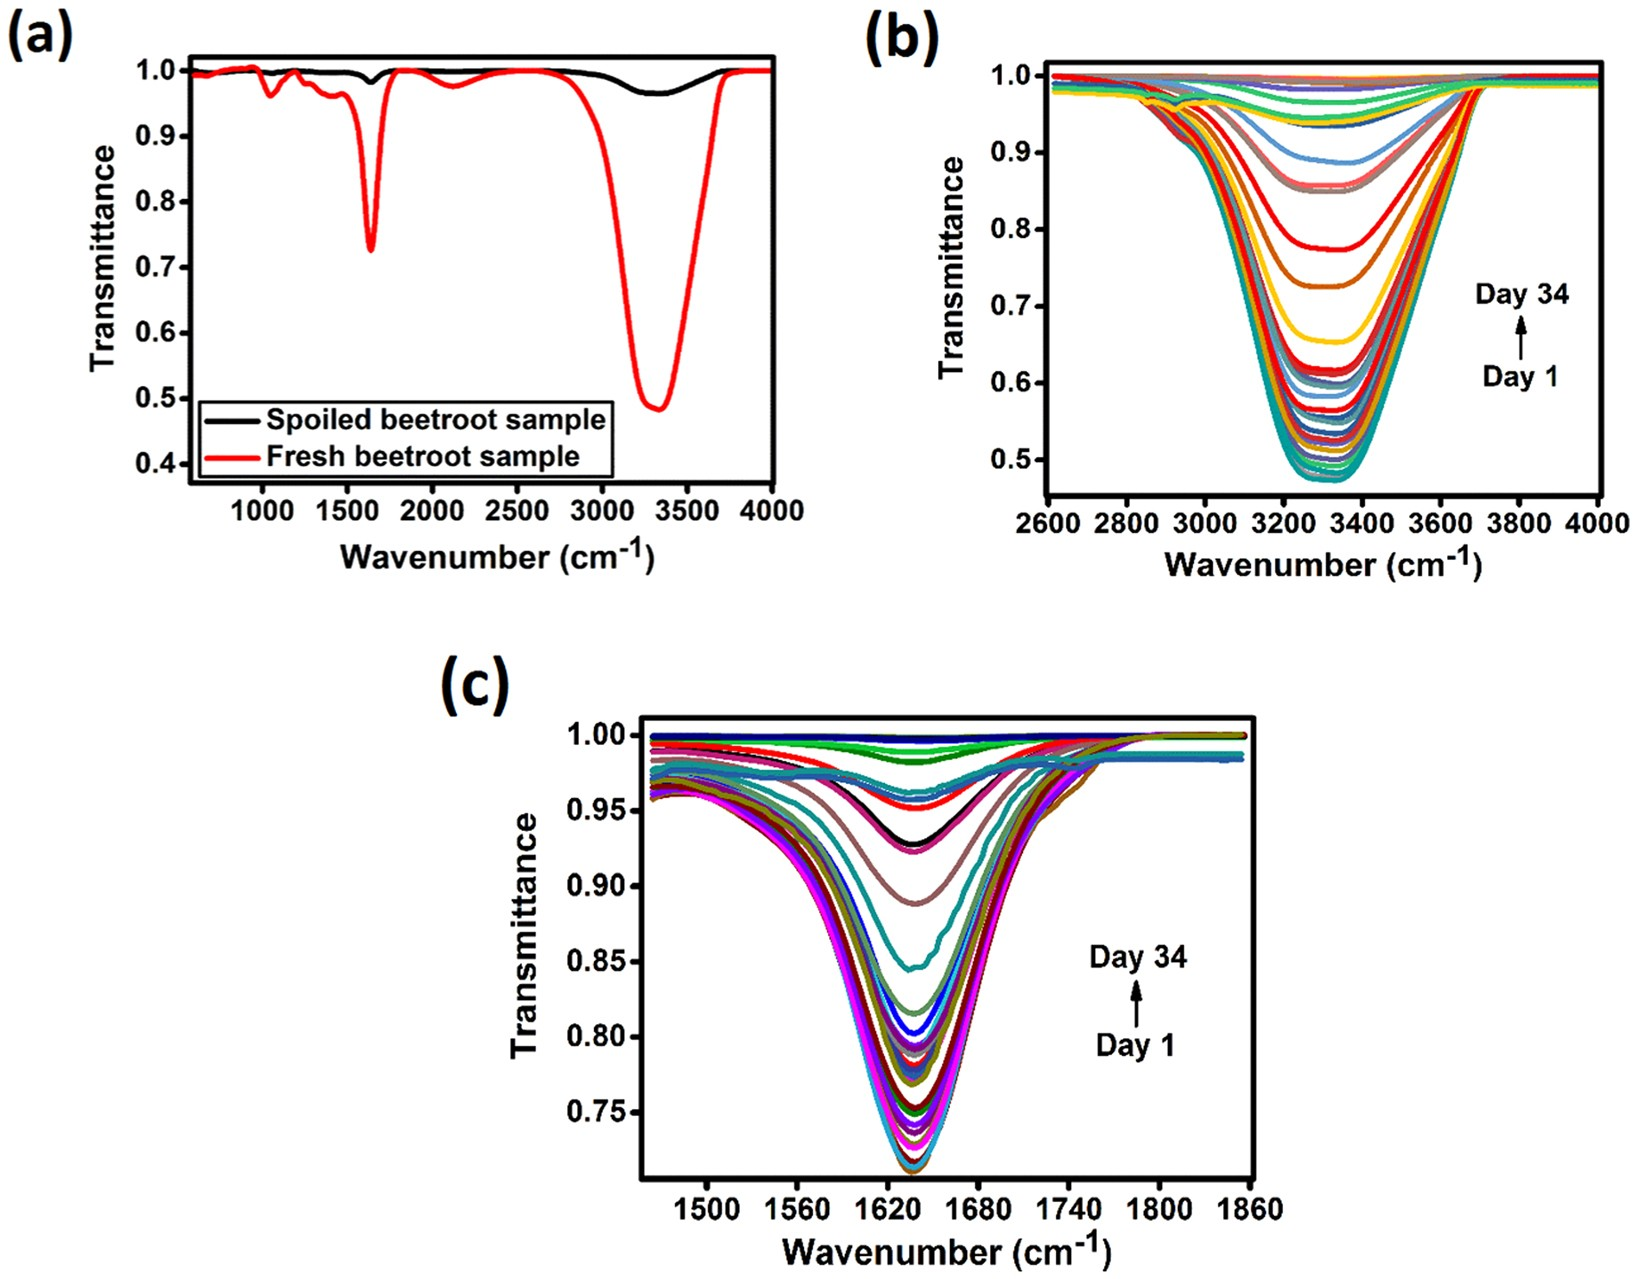 557e29d5175 Analysis of Moisture Content in Beetroot using Fourier Transform Infrared  Spectroscopy and by Principal Component Analysis | Scientific Reports